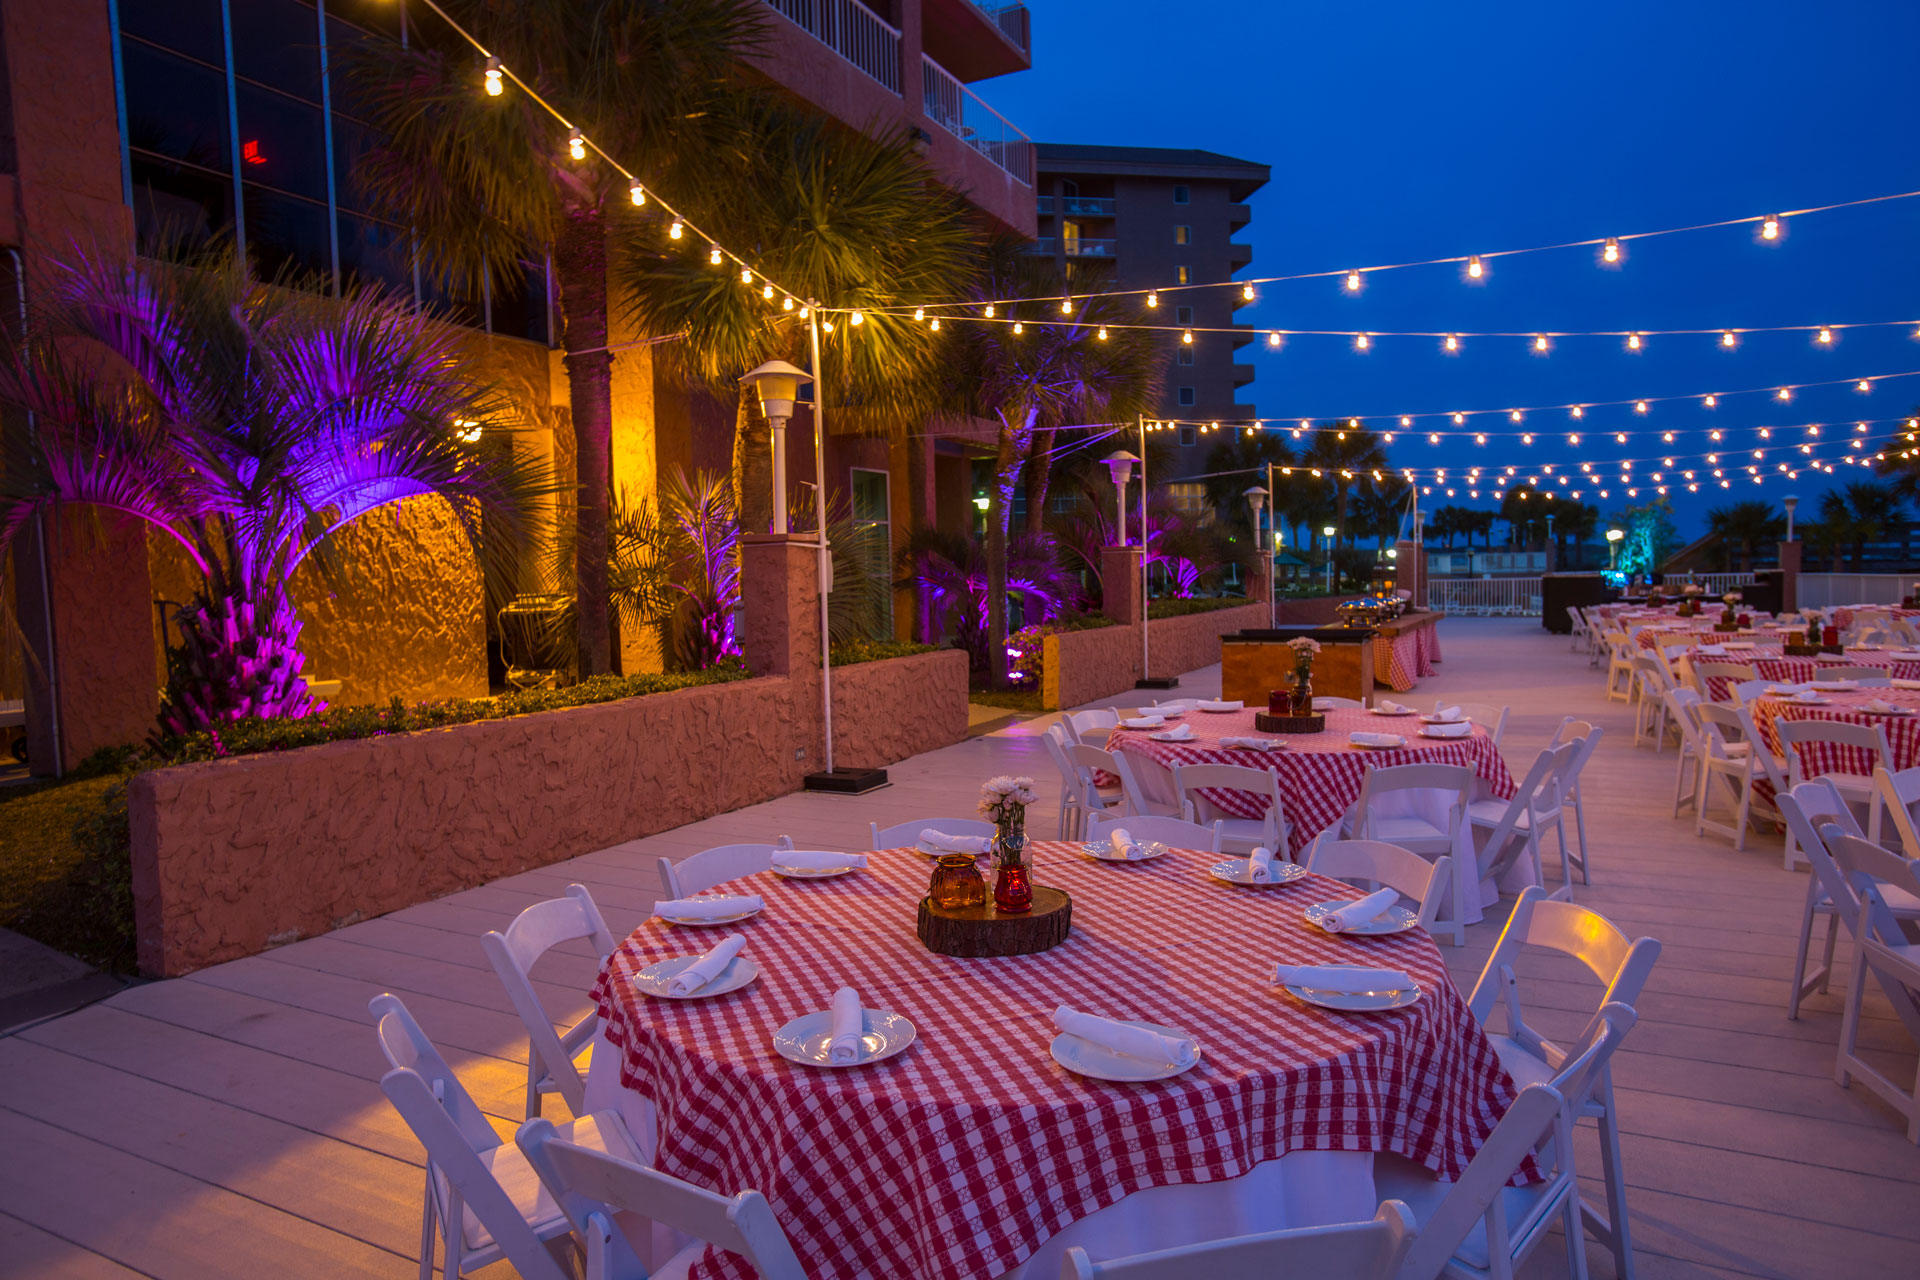 Nighttime outdoor venue with red checkered decor theme